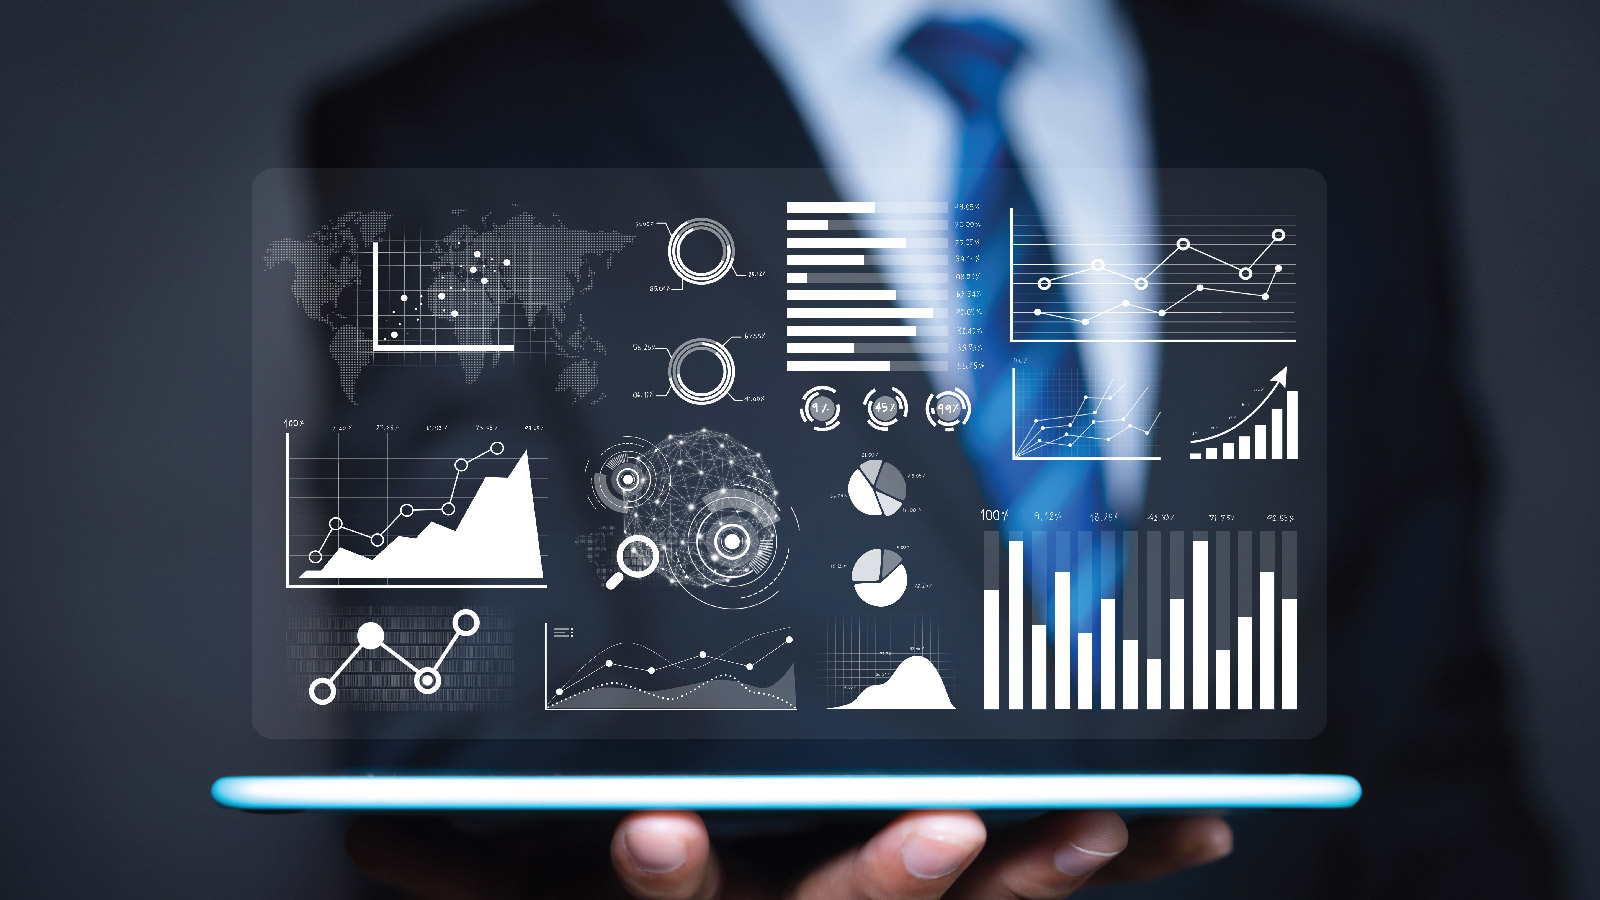 Smart Grid Analysis Market to Grow For Energy Utilities Sector